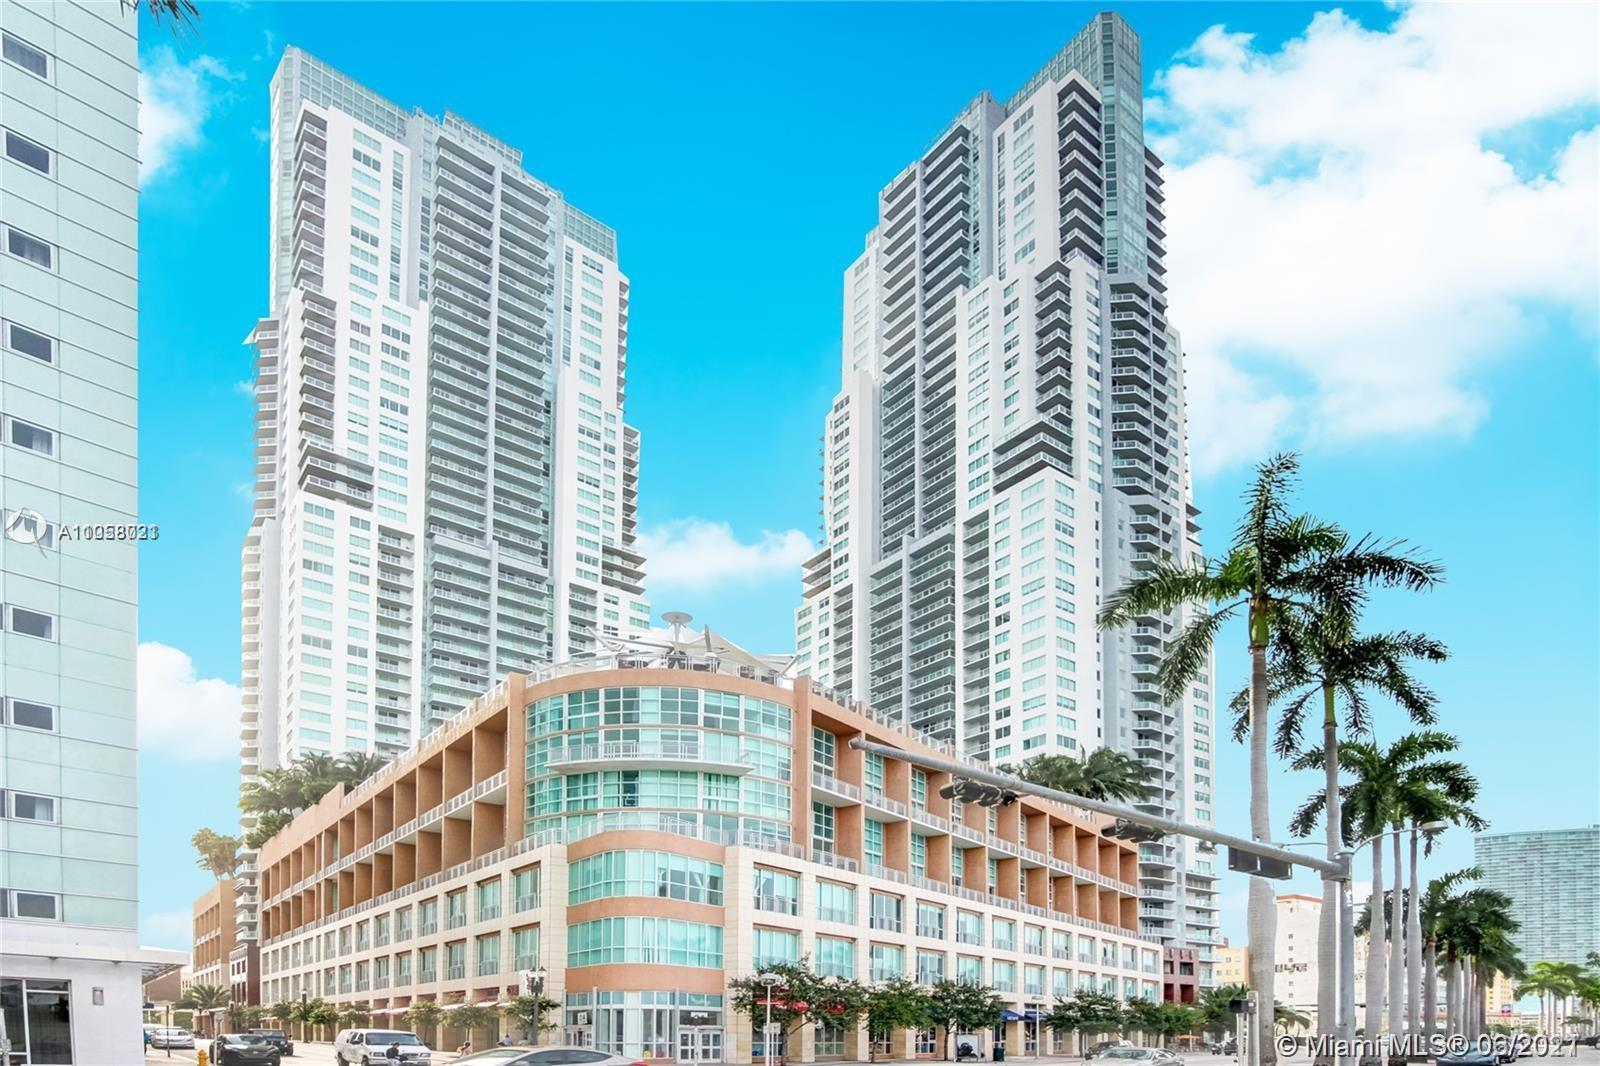 A must-see unit! nicely done 2 bedrooms + 2 bathrooms, big balcony fantastic bay and city views. Upg